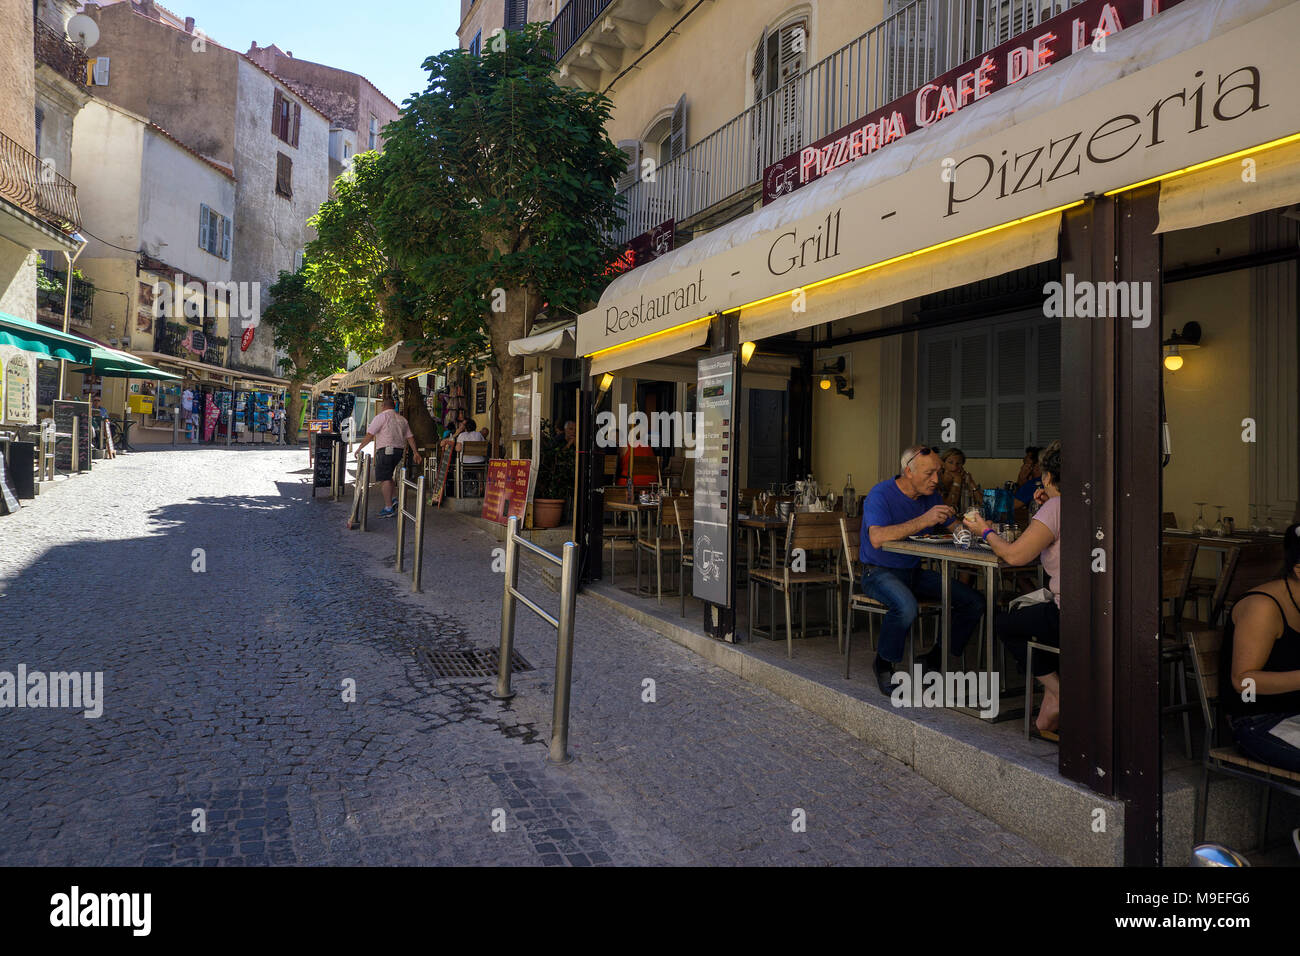 Bar and restaurant at old town of Bonifacio, Corsica, France, Mediterranean, Europe - Stock Image